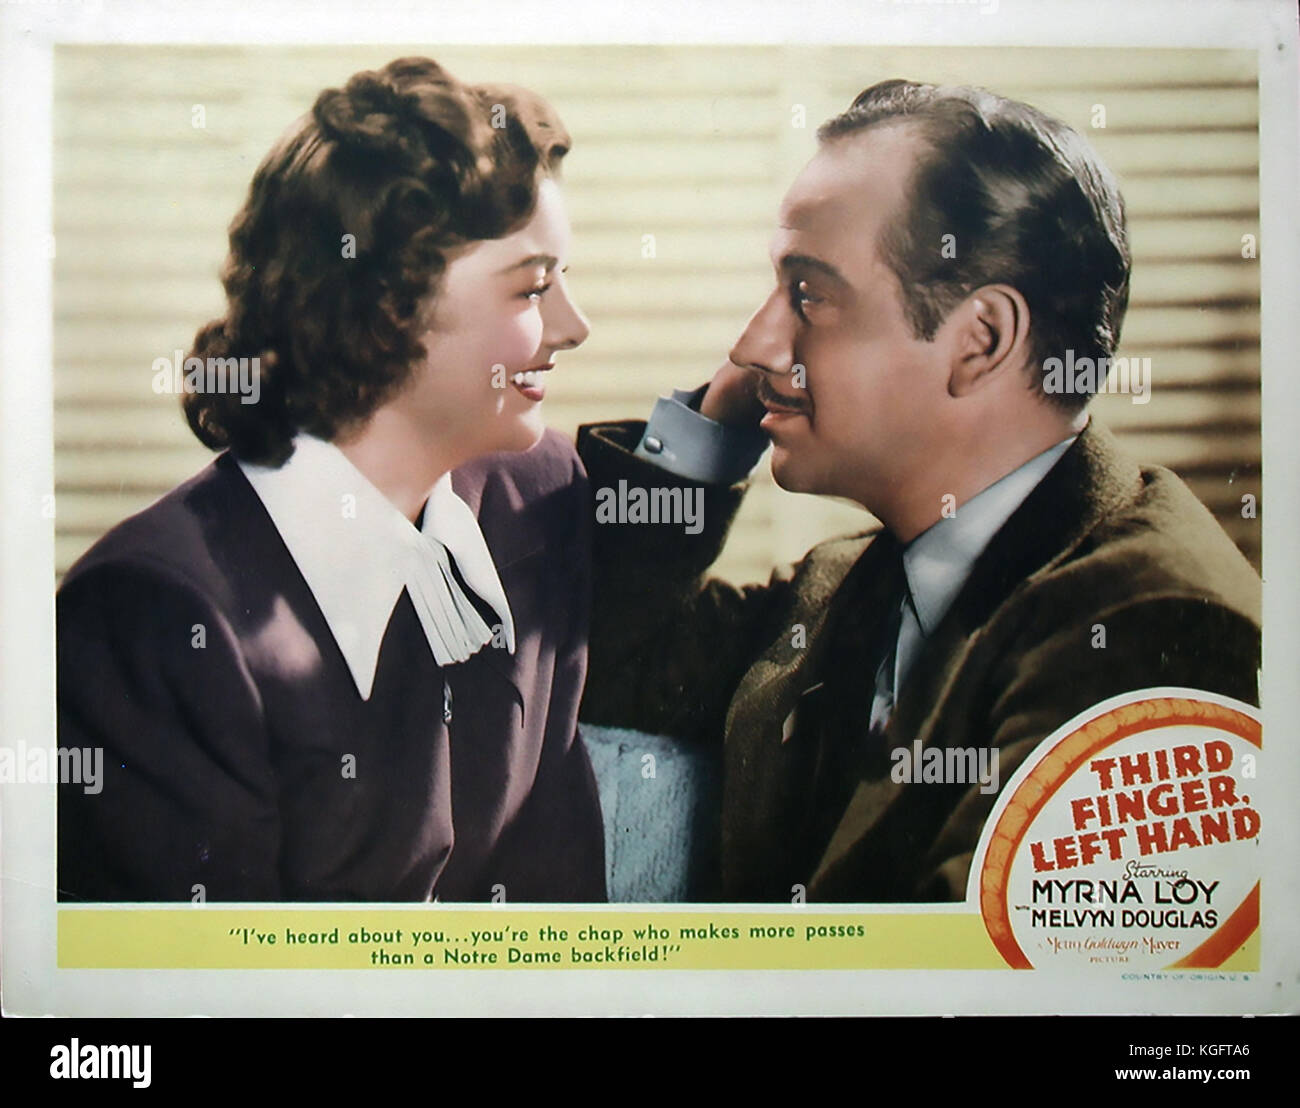 THIRD FINGER, LEFT HAND 1940 MGM film with Lyrna Loy and Melvyn Douglas - Stock Image